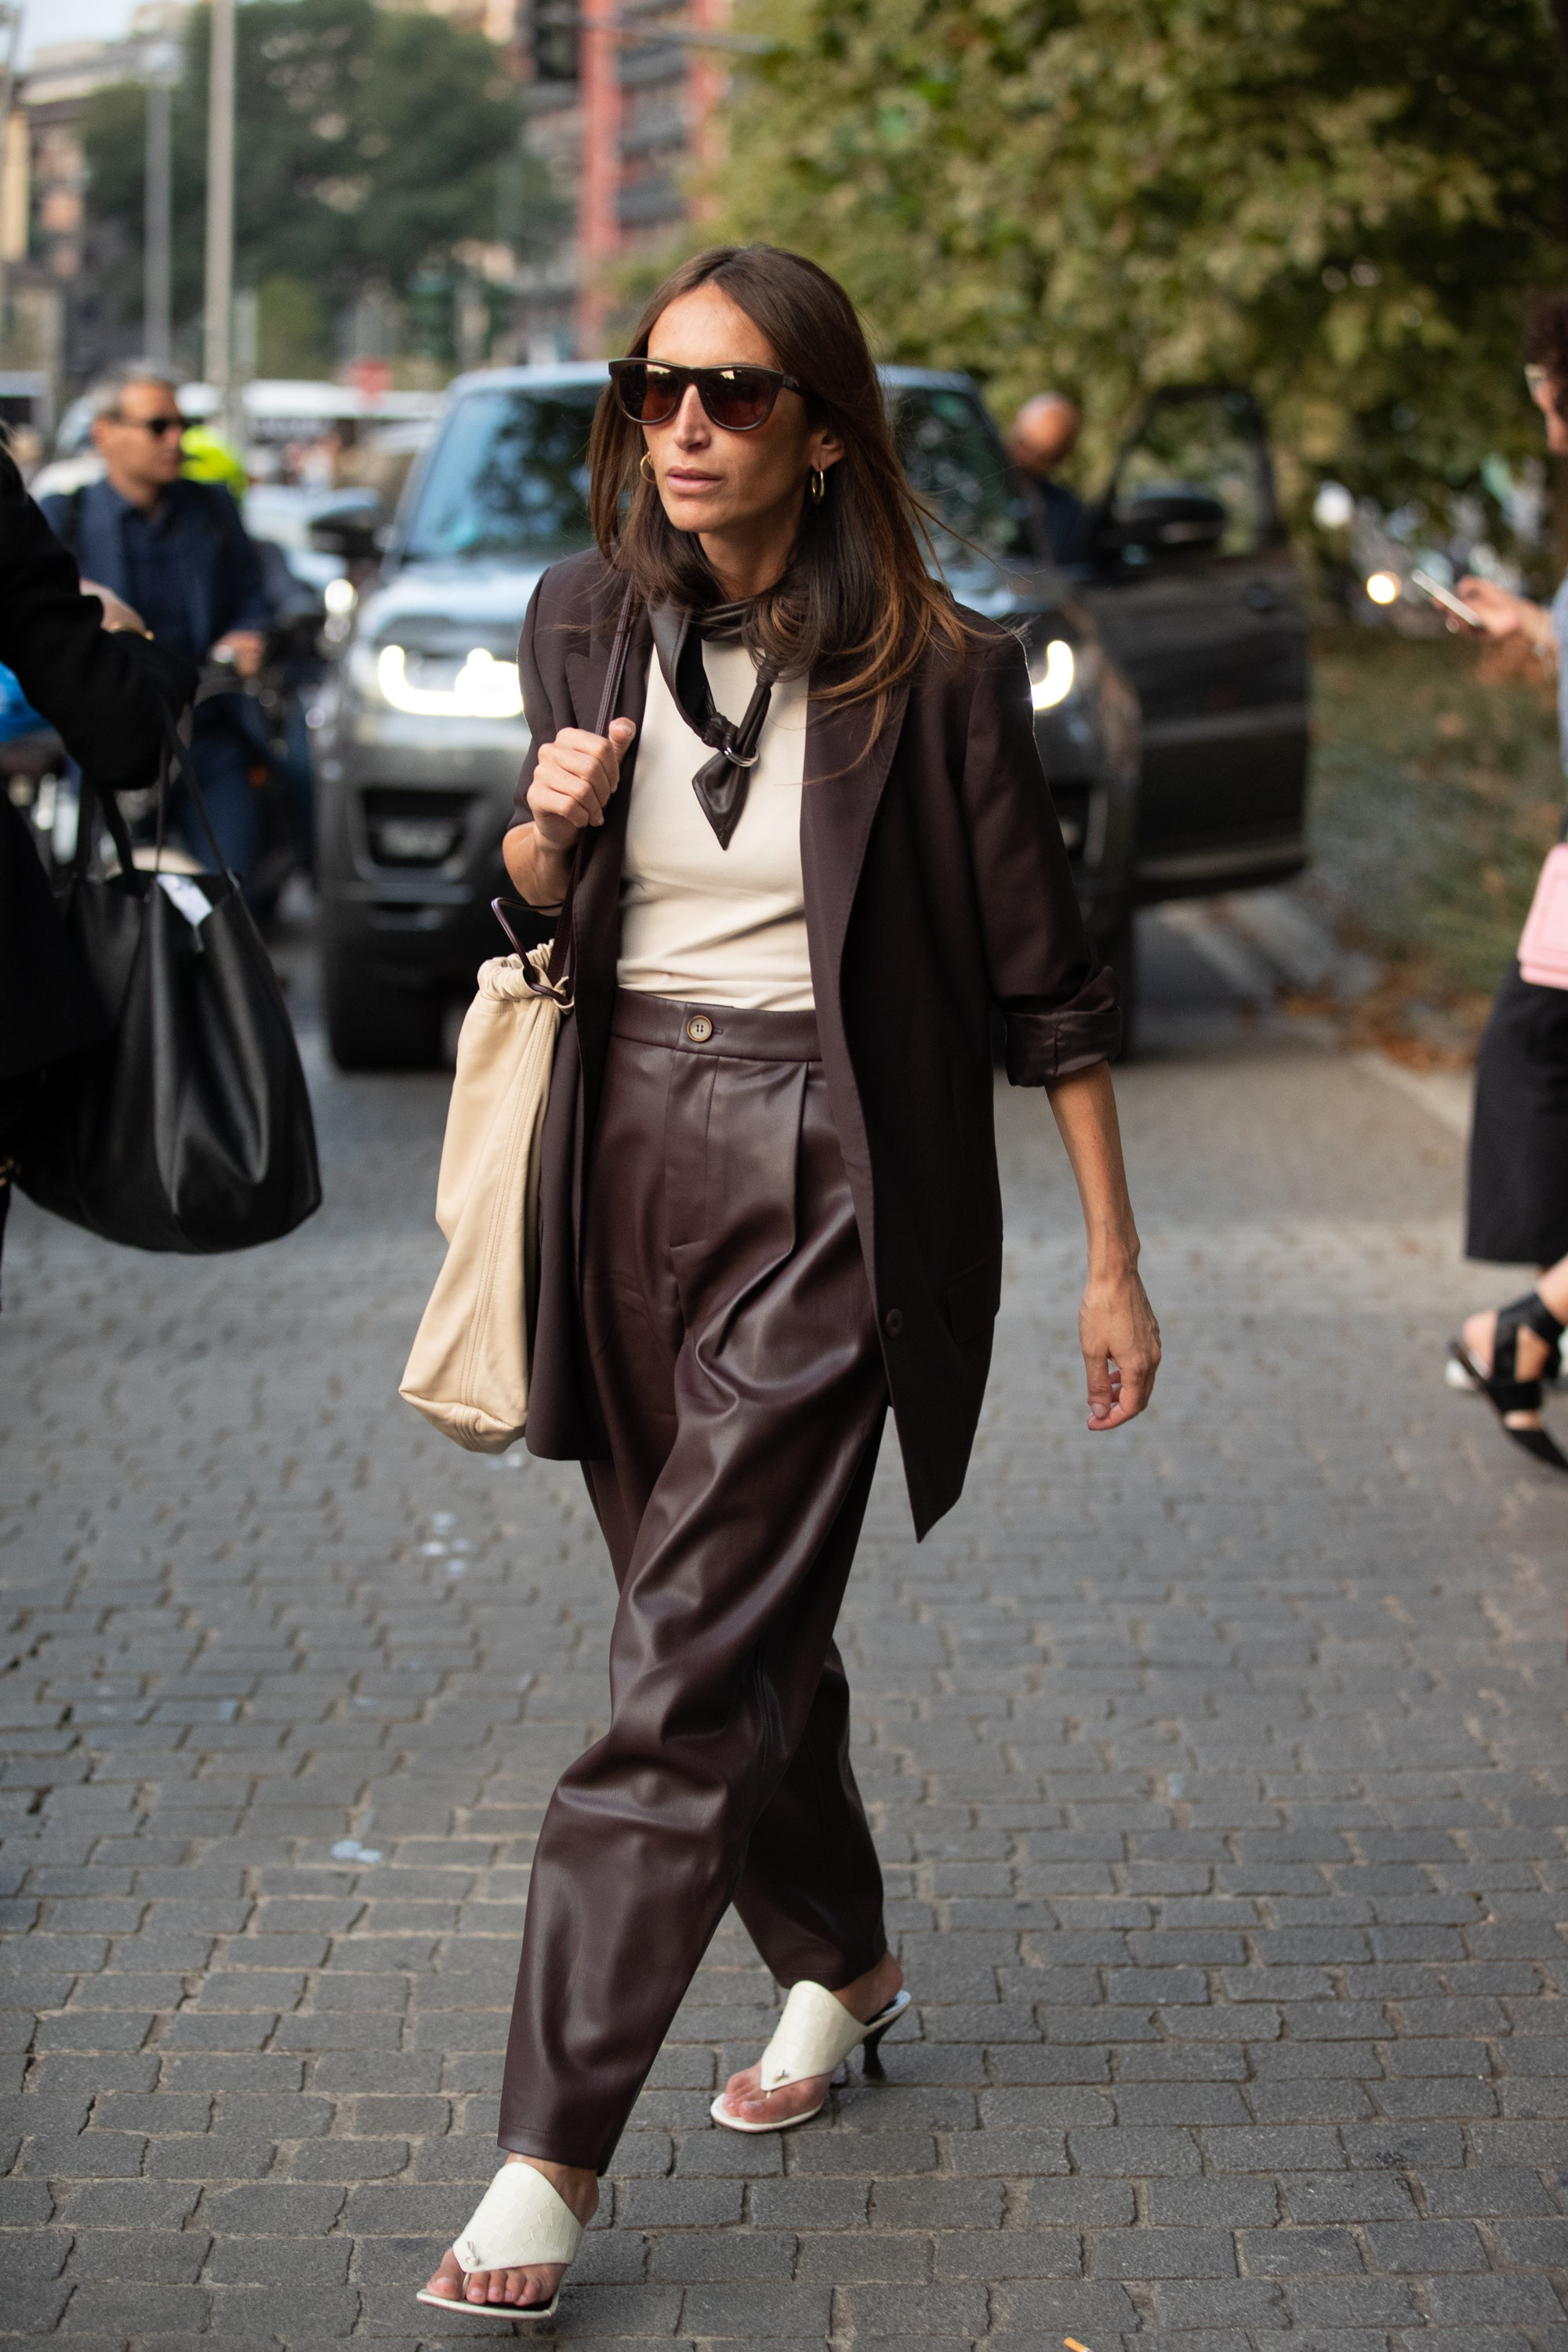 The 4 Top Milan Street Style Trends, From Leather To Mixed Prints